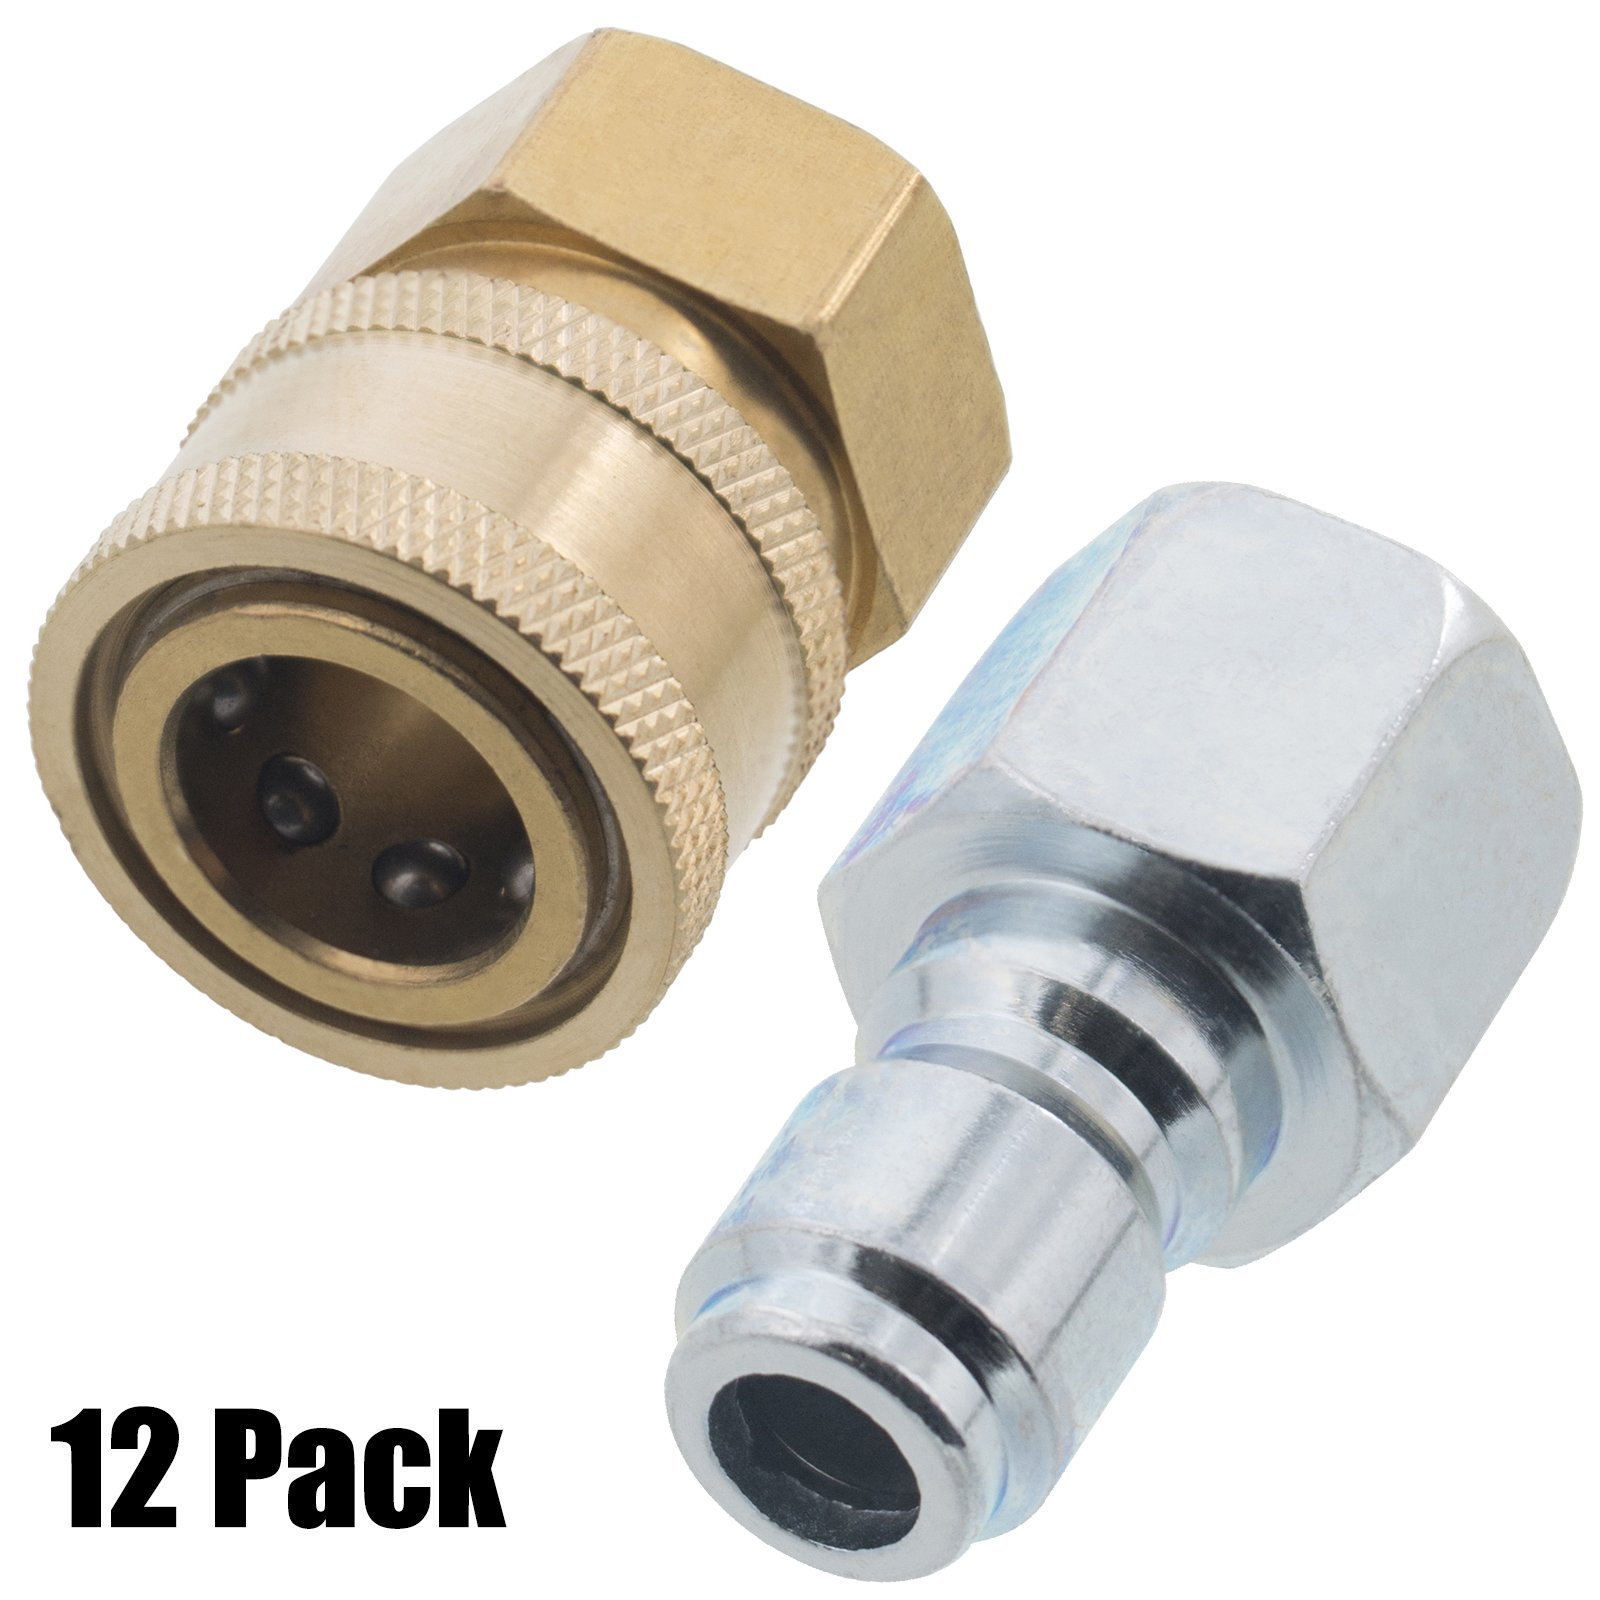 Erie Tools 12 Pressure Washer 3/8in. Female NPT Quick Connect Brass Socket Set and Plug High Temp 4000 PSI 10.5 GPM by Erie Tools